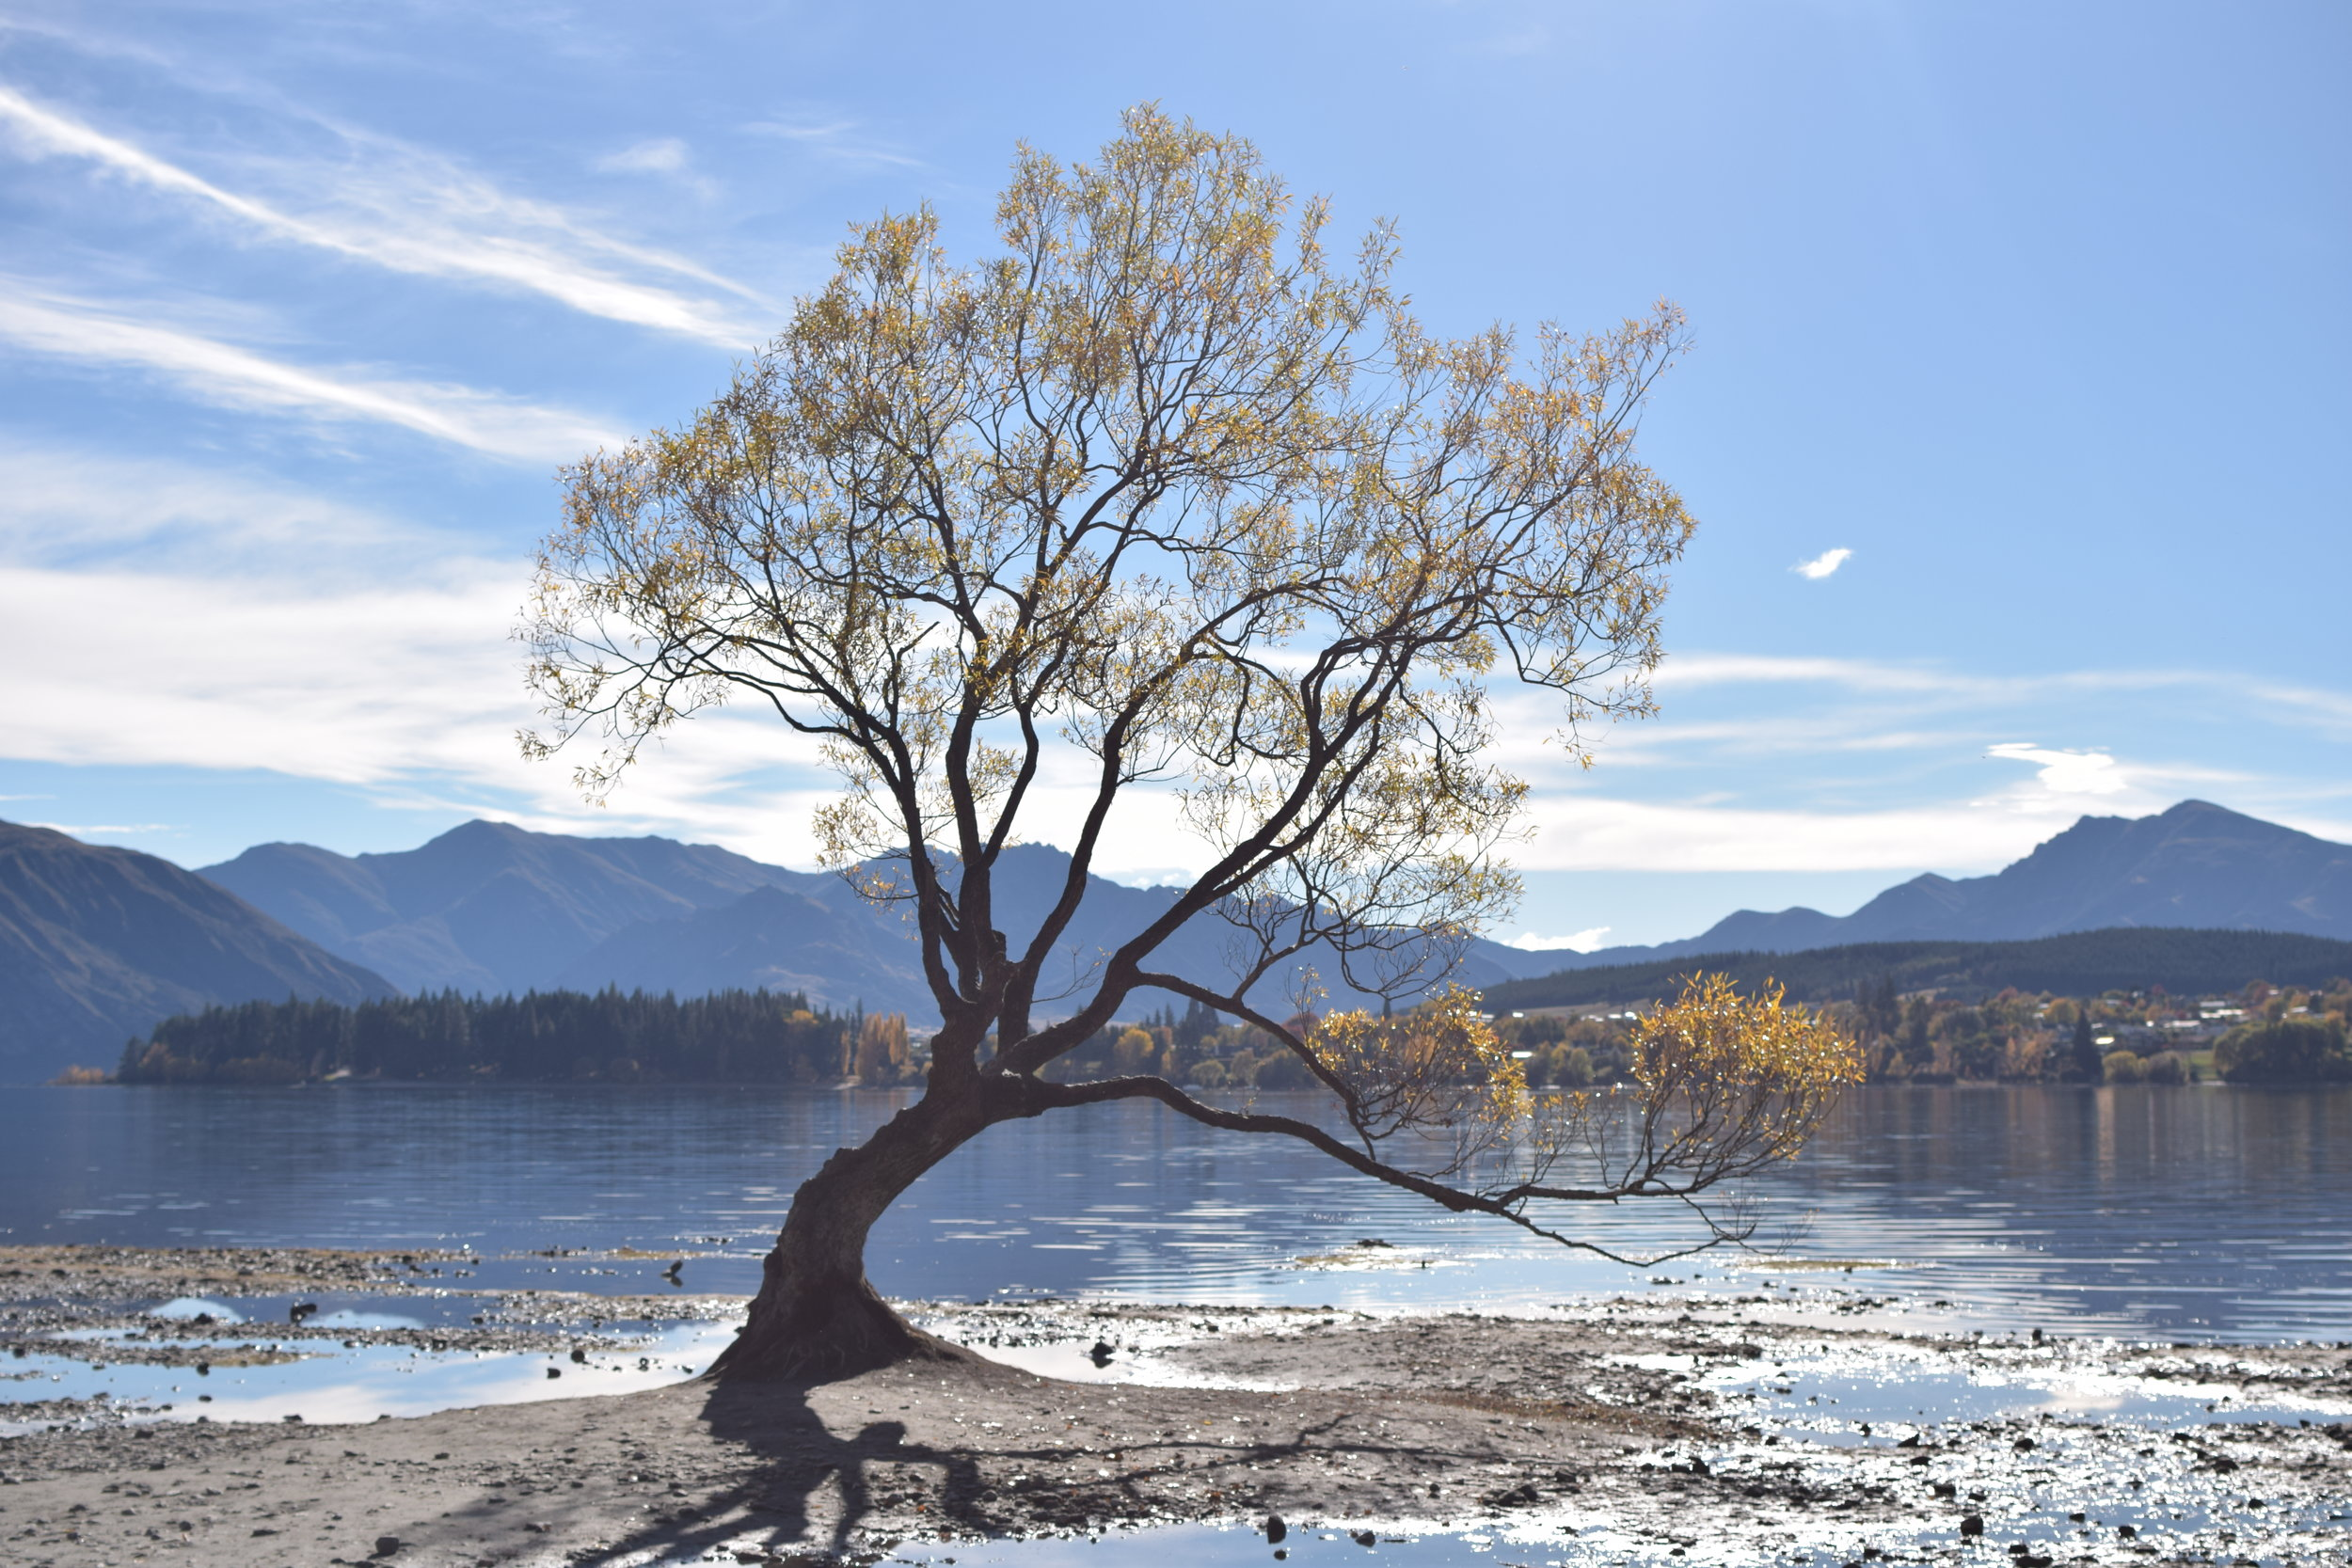 KANO Travel & Trip to That Wanaka Tree| New Zealand